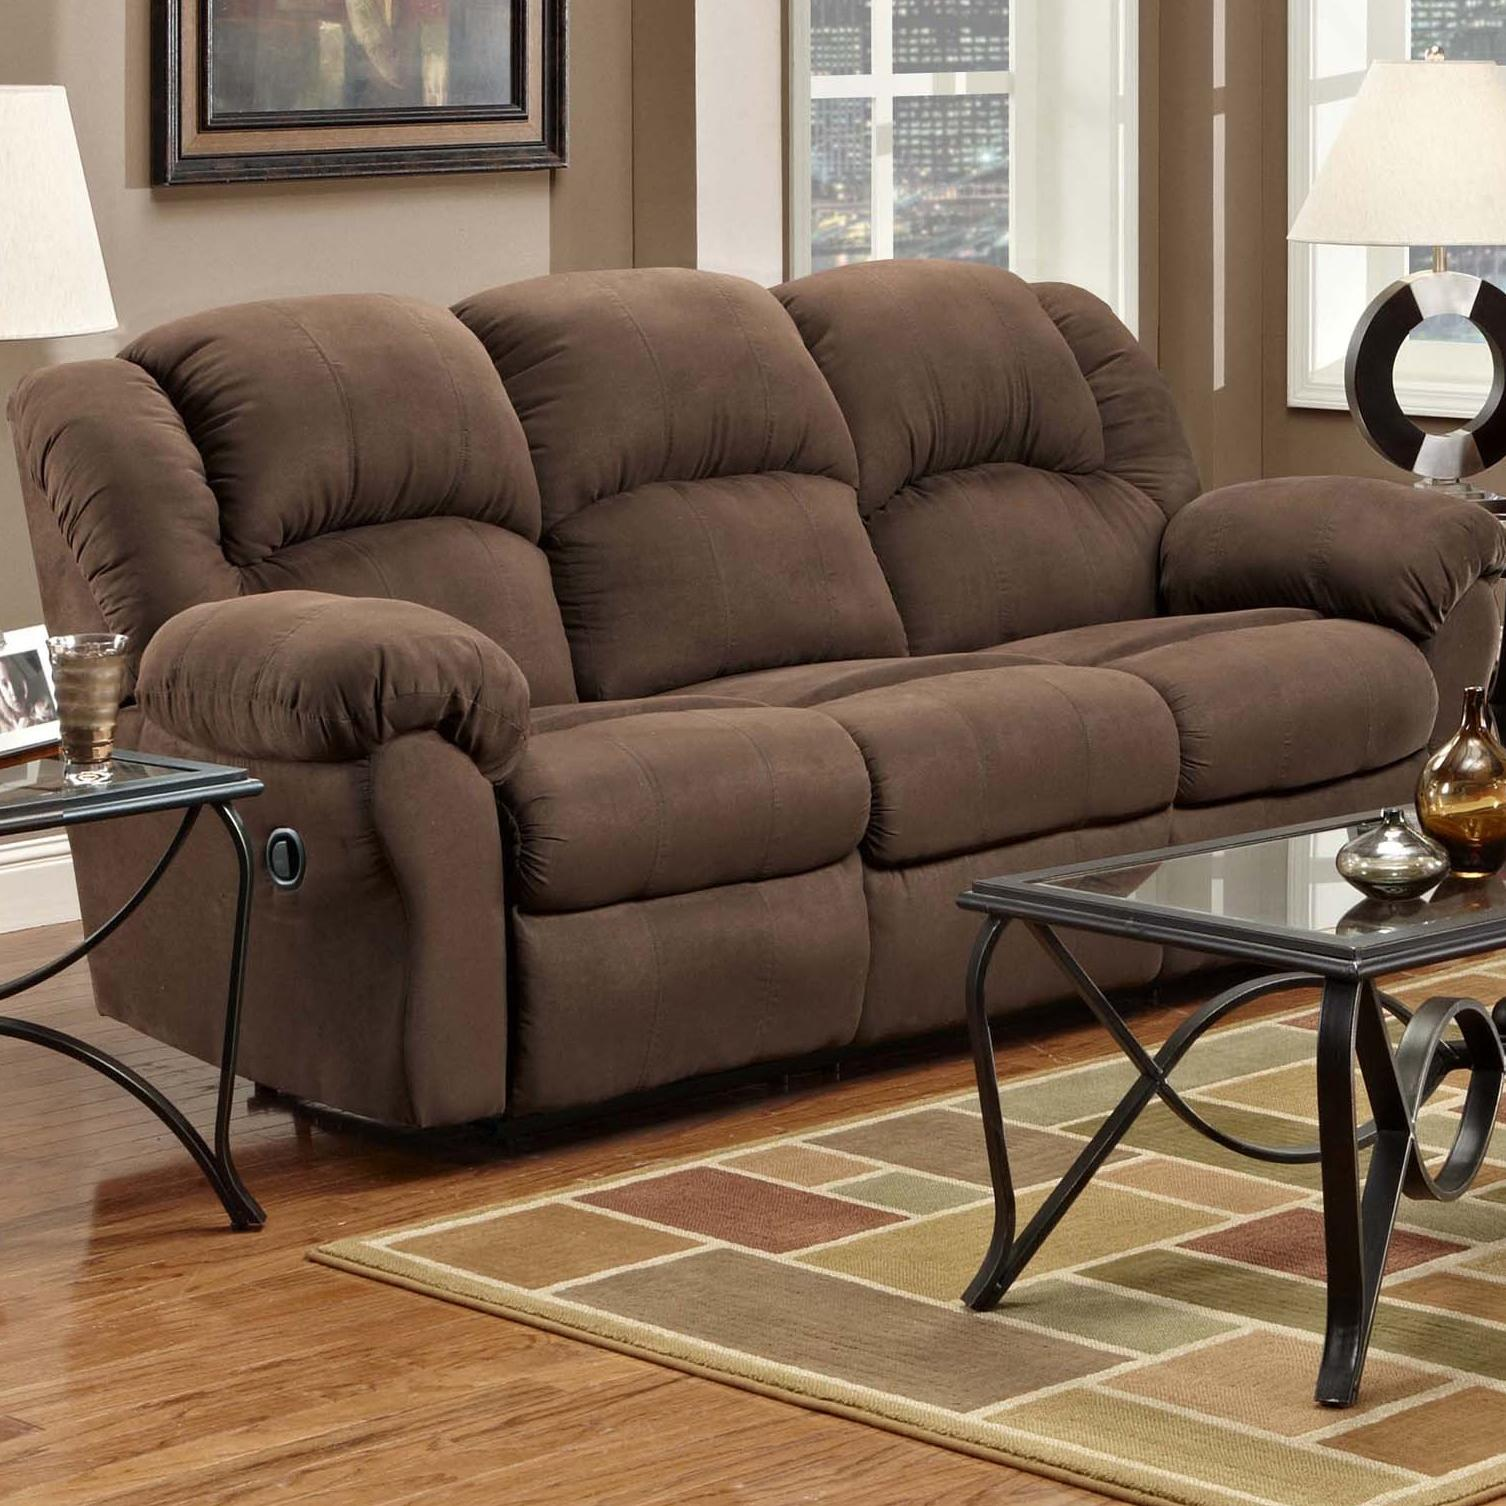 Affordable Furniture 1000 Reclining Sofa - Item Number: 1003